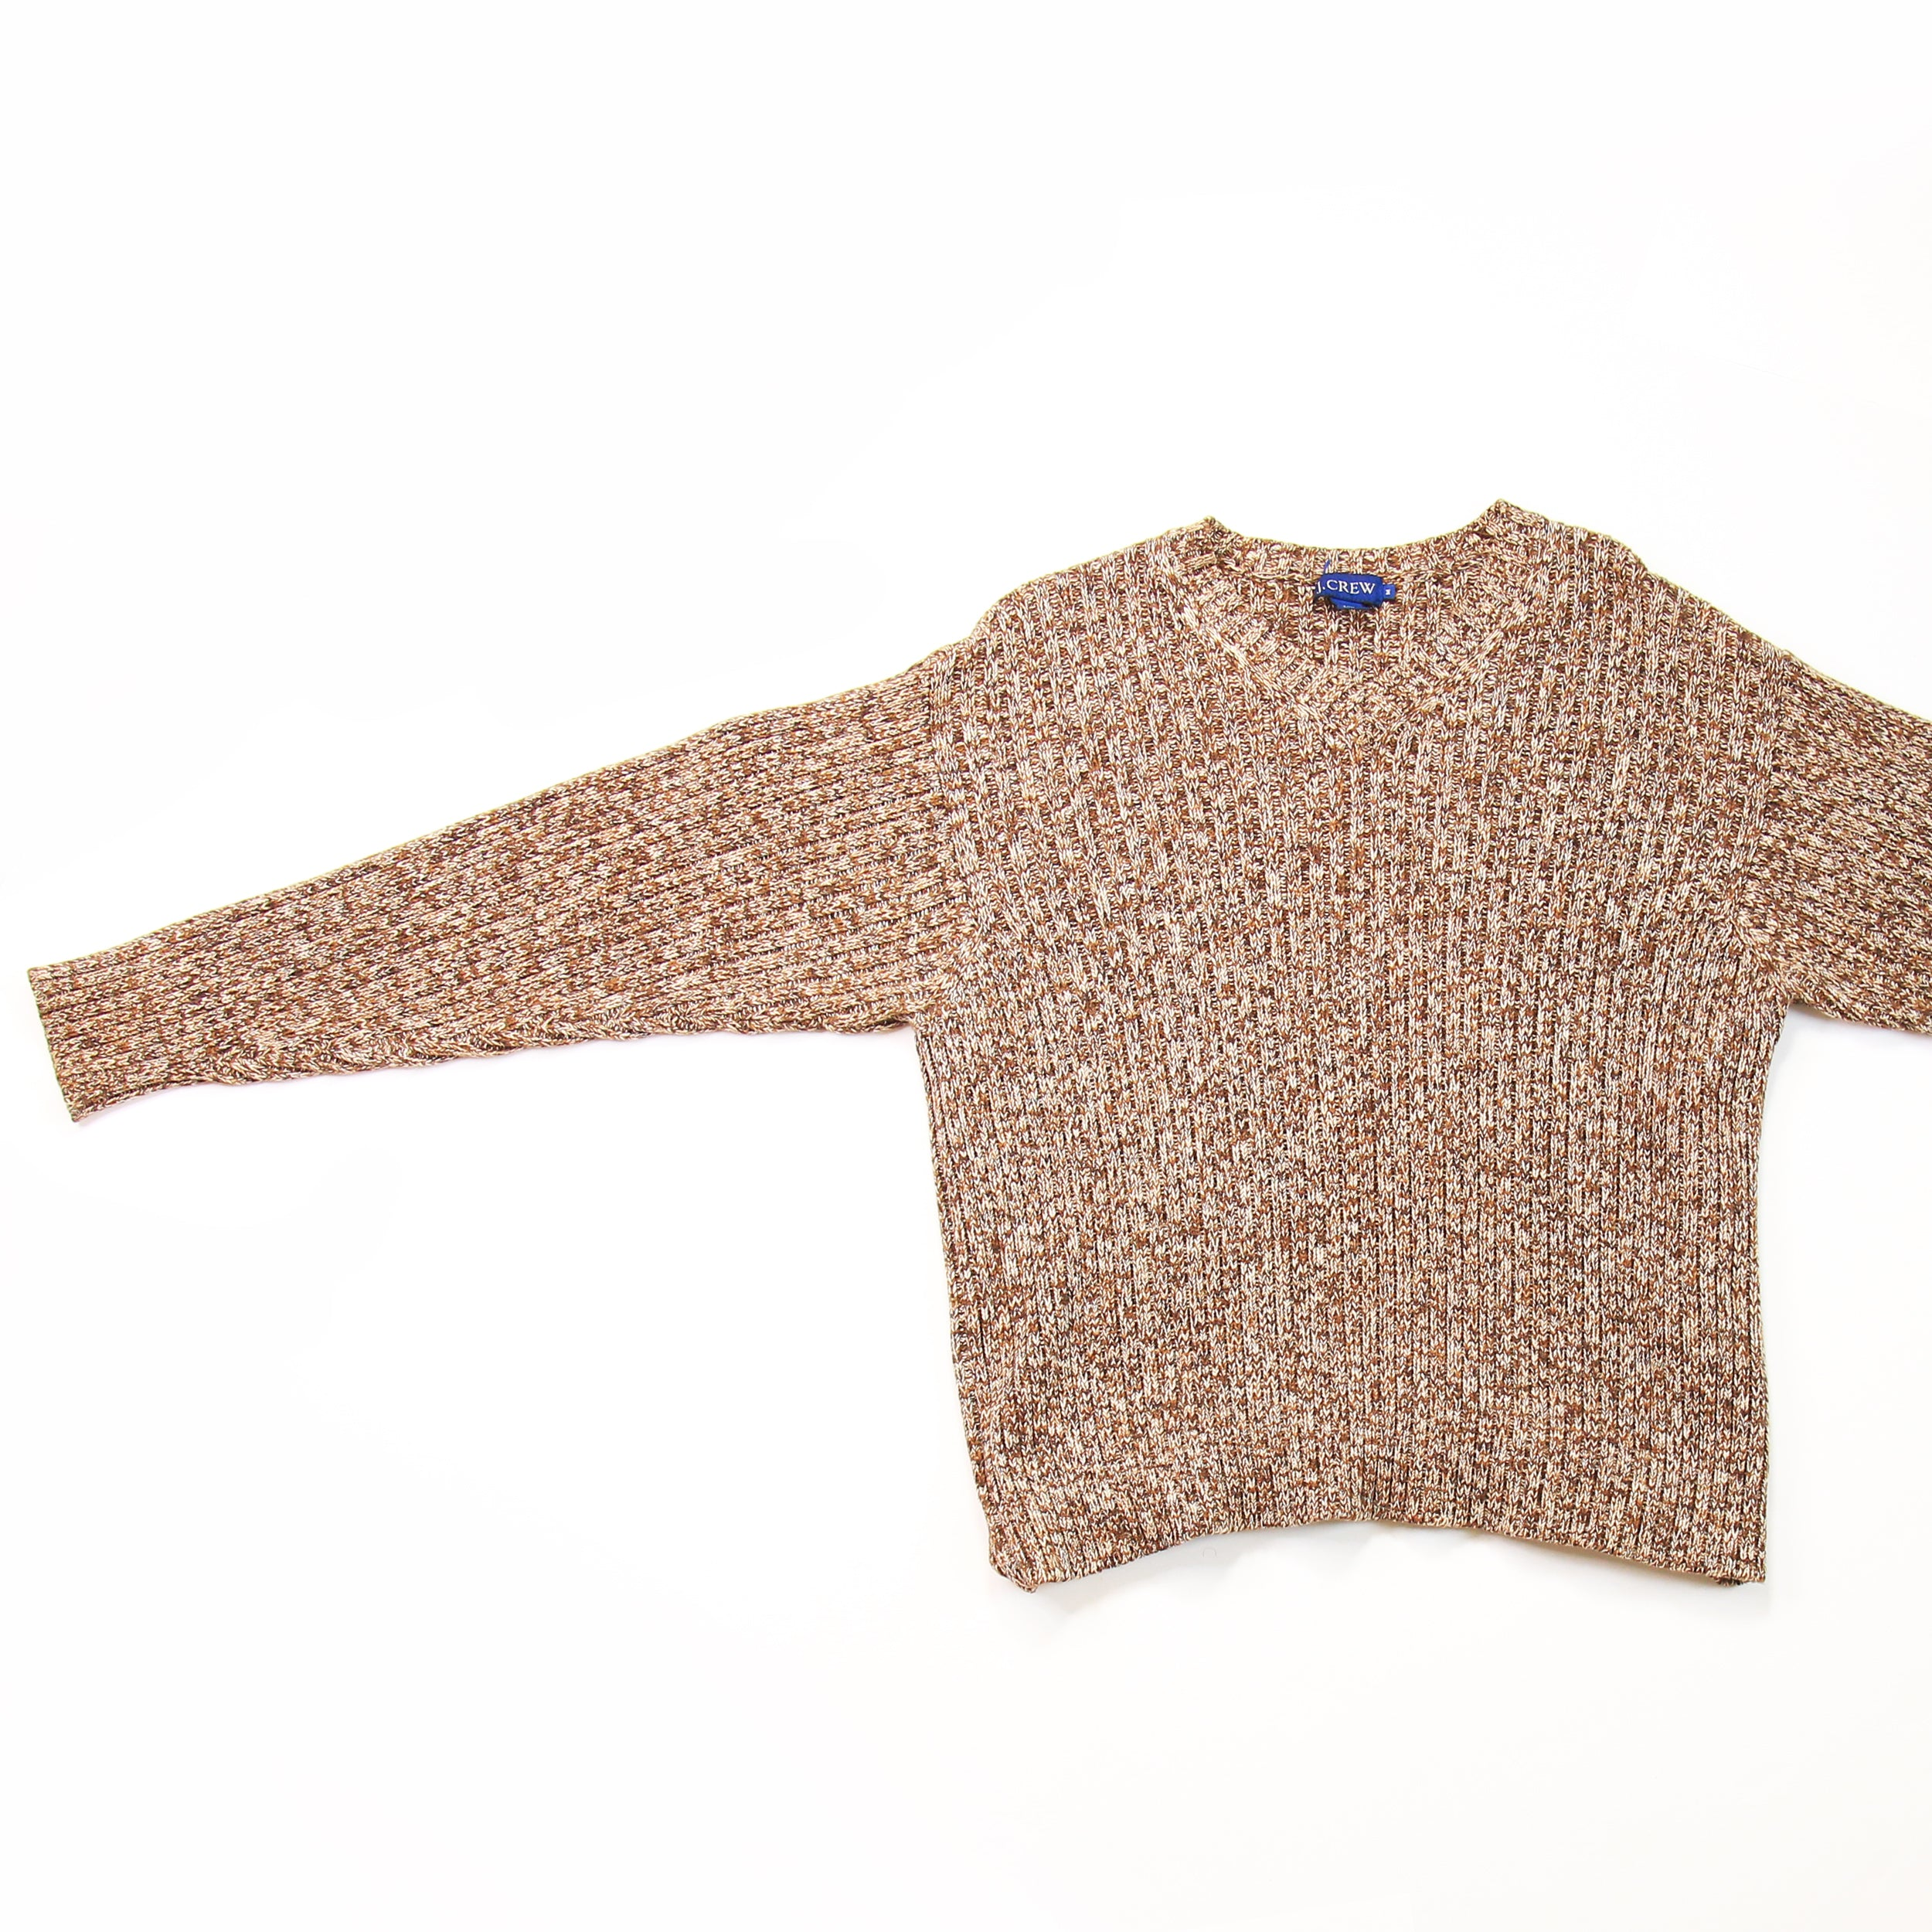 J. Crew Brown Knit Sweater Size M